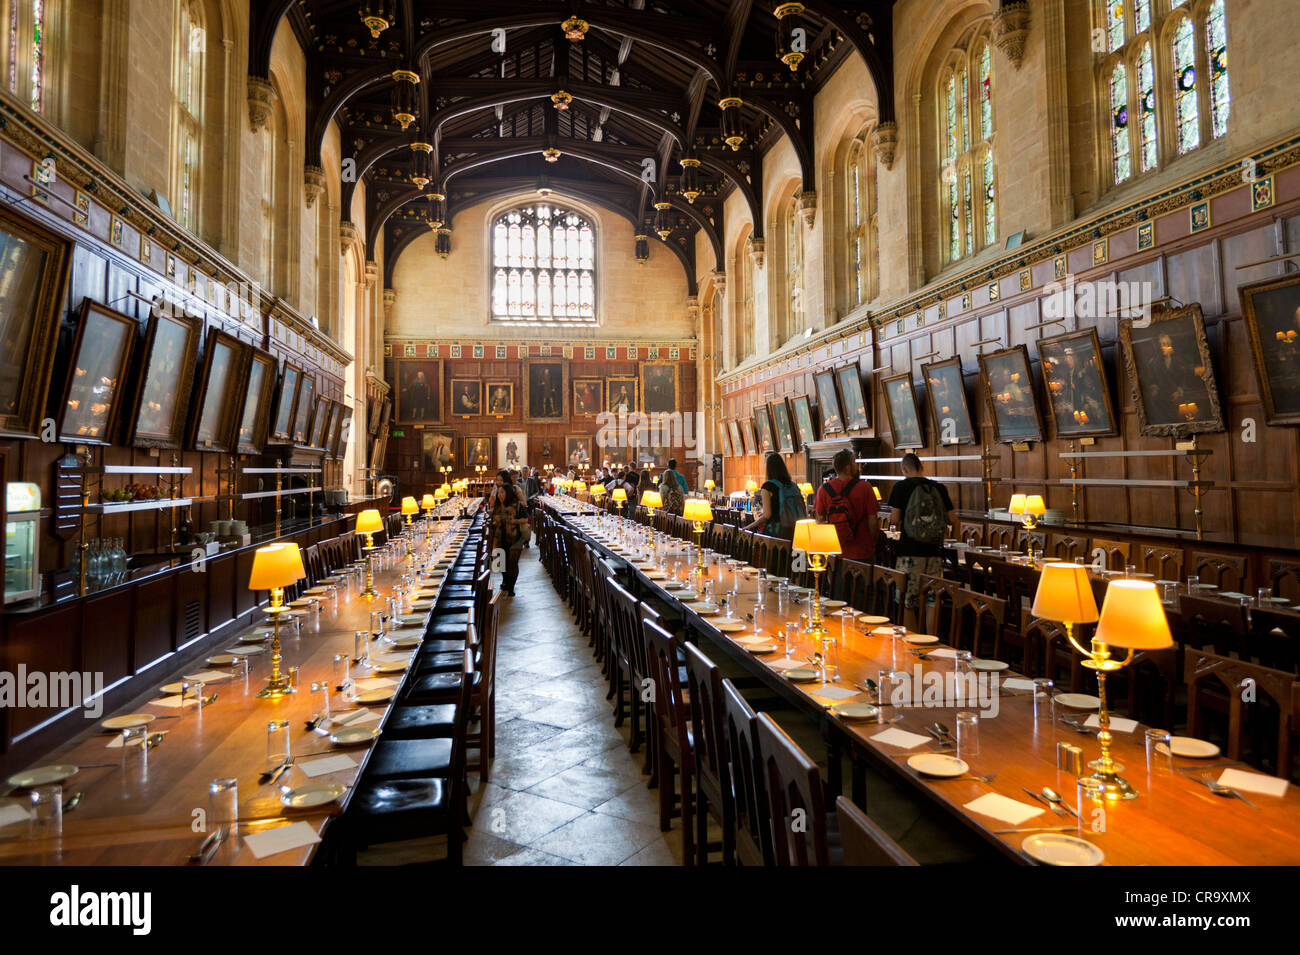 Christ Church college Great Hall dining room Oxford University Oxfordshire England UK GB EU Europe - Stock Image